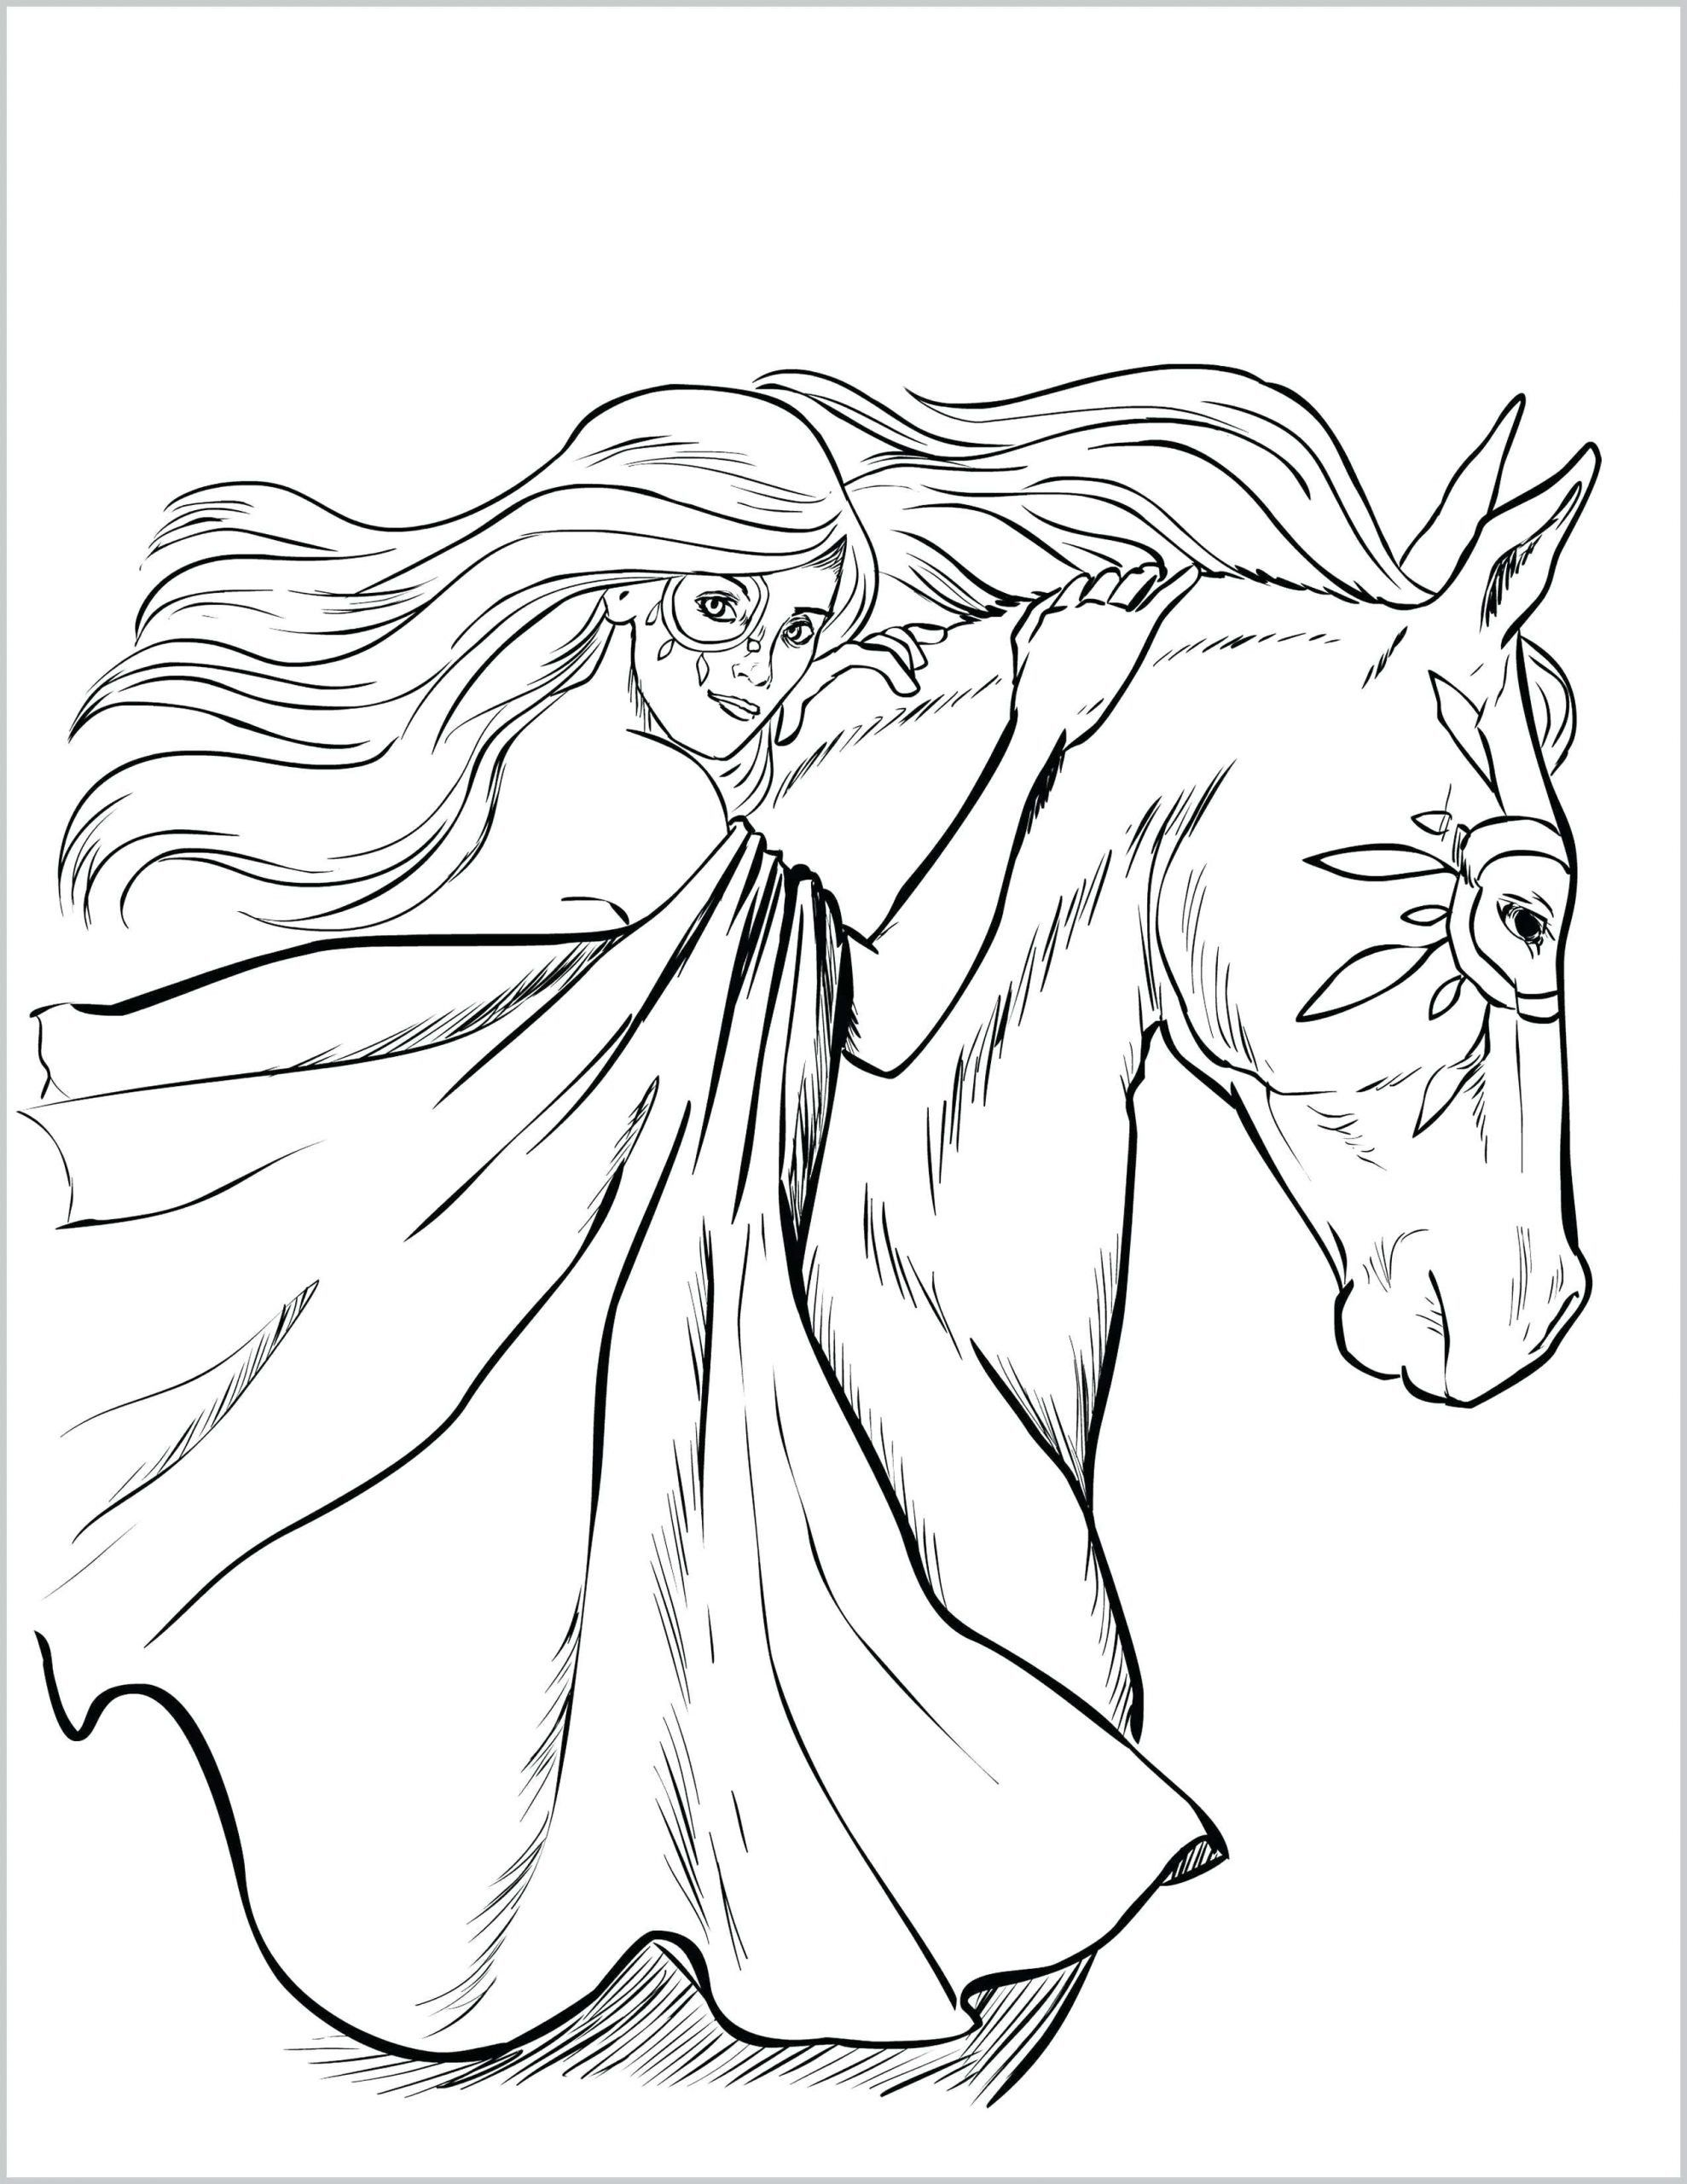 Trojan Horse Coloring Page Youngandtae Com Horse Coloring Pages Horse Coloring Animal Coloring Pages